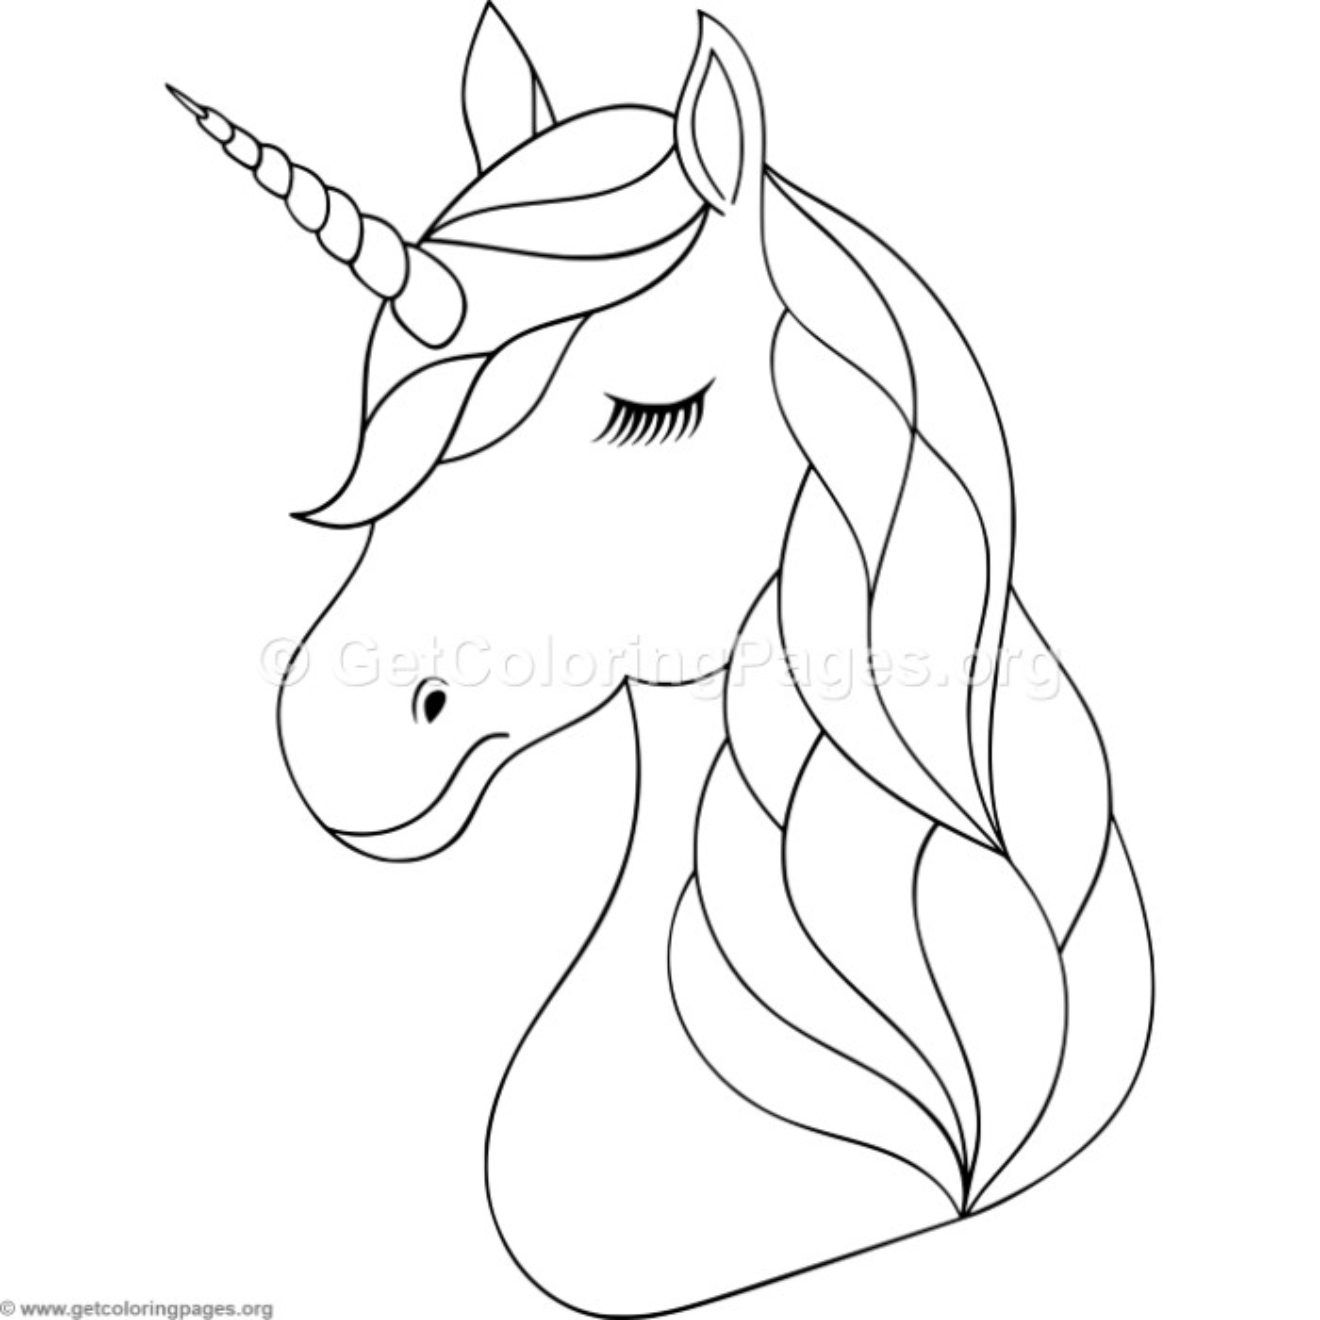 Unicorn Head Coloring Pages Getcoloringpages Org Unicorn Coloring Pages Easy Coloring Pages Coloring Pages